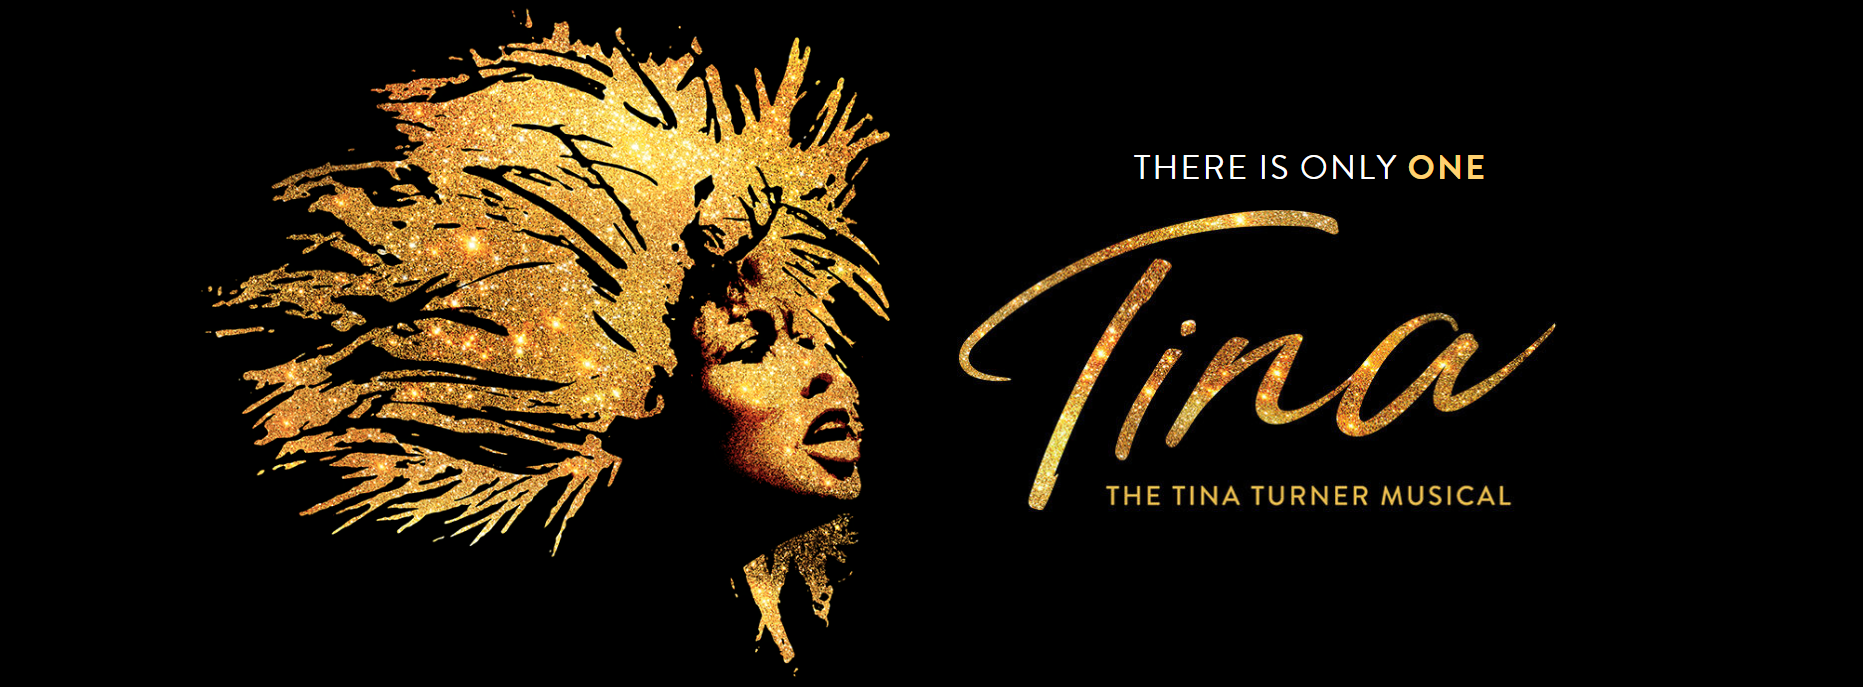 A sparkling gold drawing of Tina Turner with wild hair is shown, next to the logo for Tina, the Tina Turner musical, which is styled like an autograph.